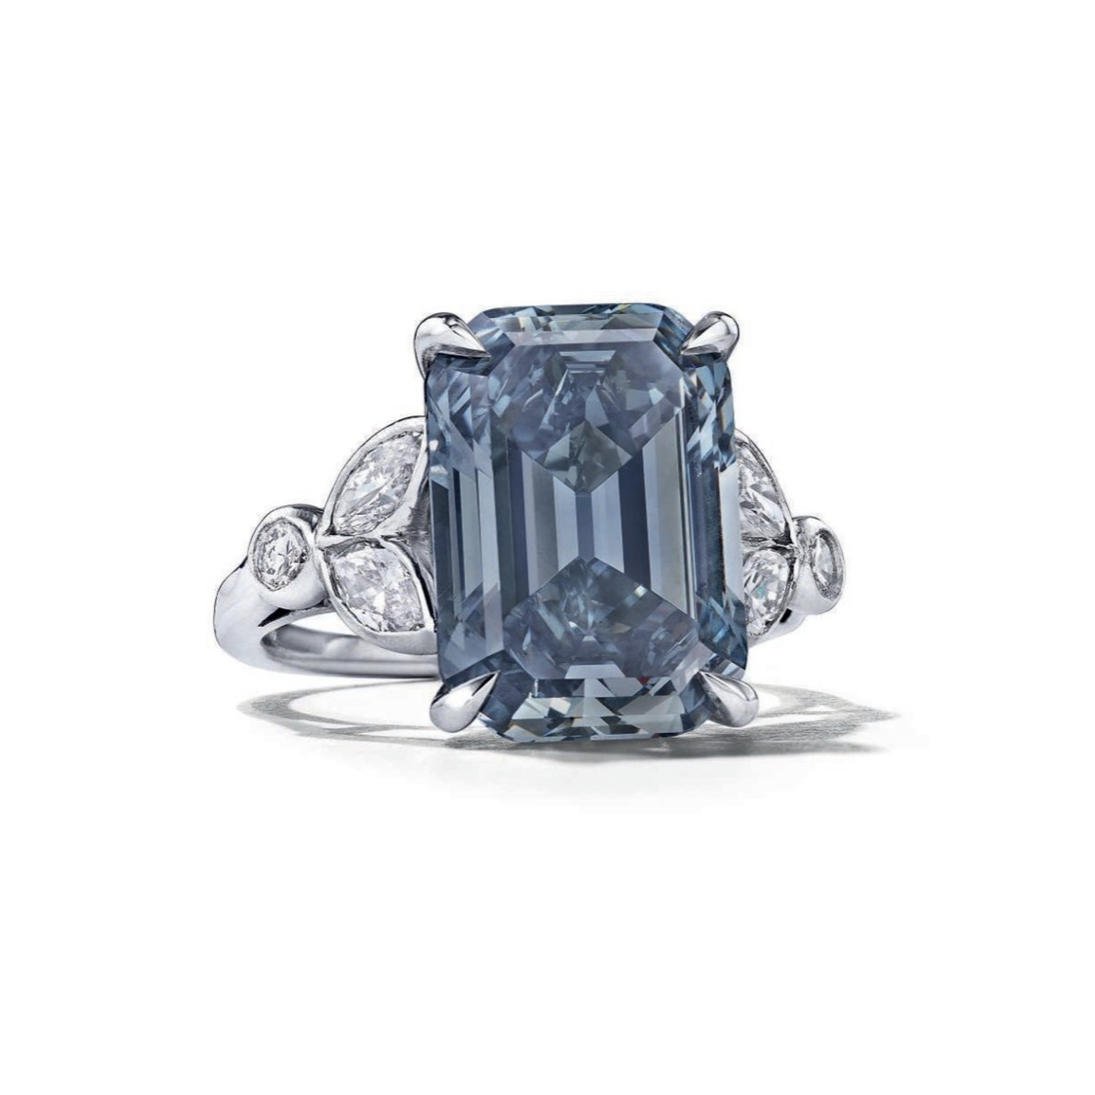 Christie's Geneva Auction Next Month Will Showcase Some Interesting Fancy Color Diamonds